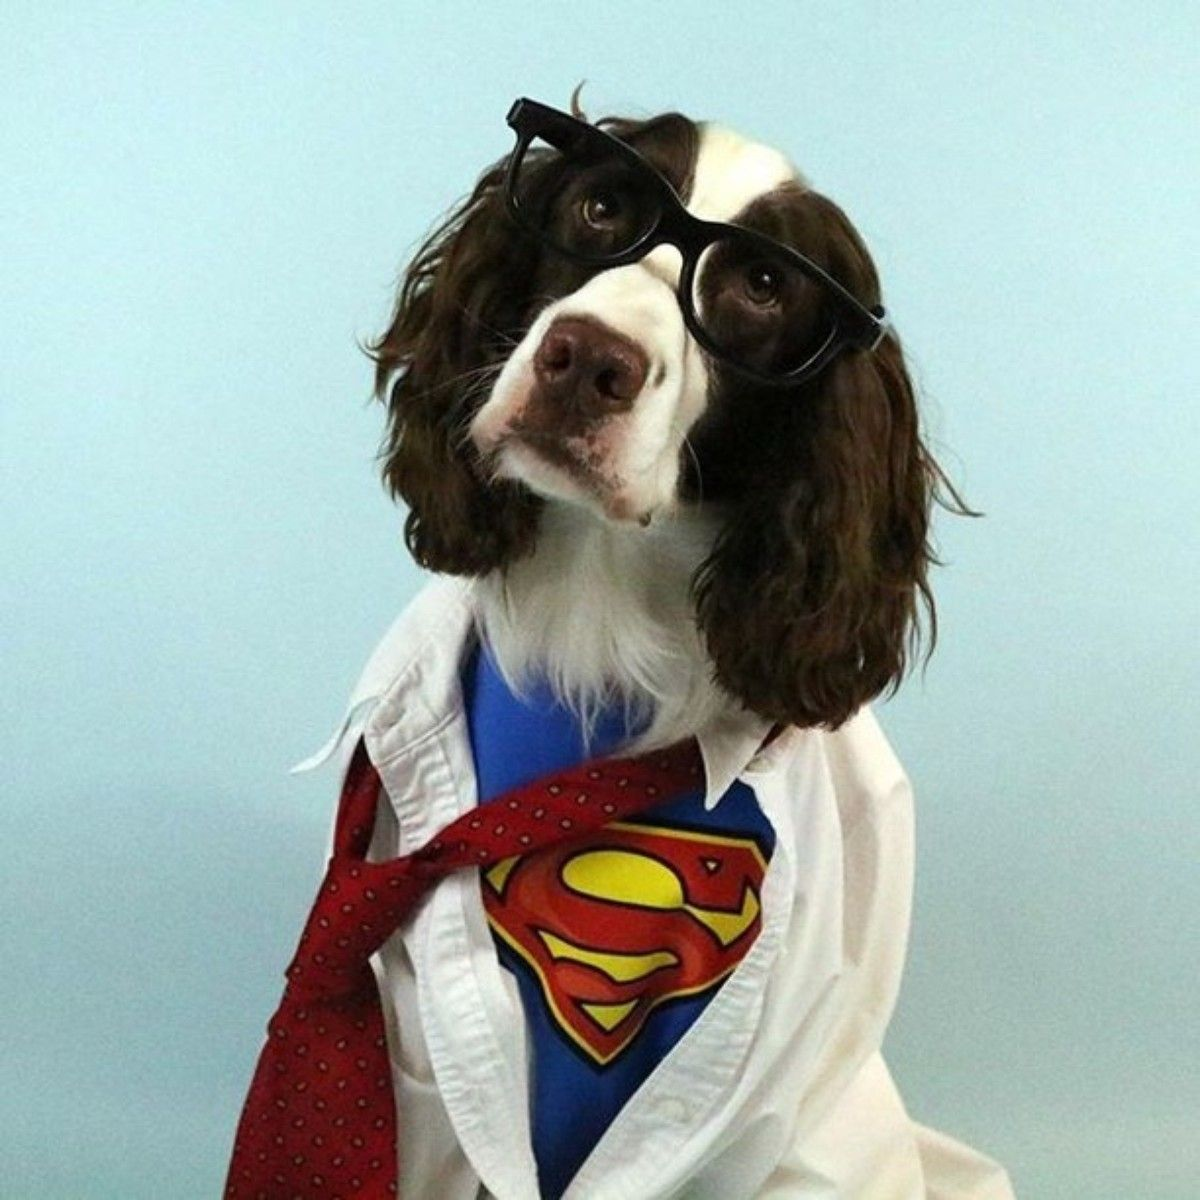 Tj The English Springer Spaniel Is Looking Good On Pack Dog Halloween Costumes Spaniel Breeds Springer Spaniel